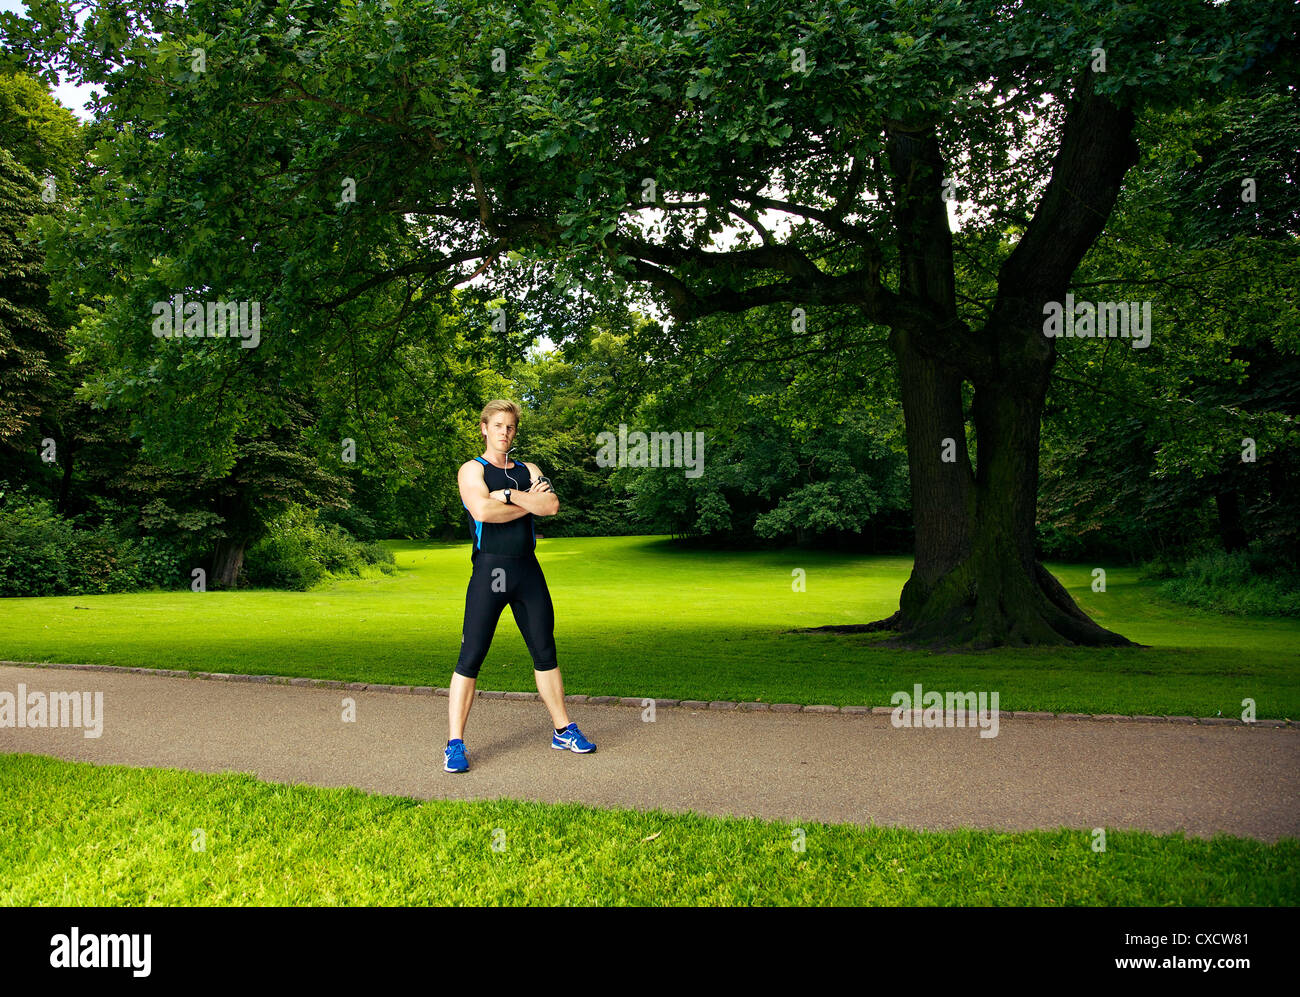 Athlete in the park posing with trees in the background - Stock Image